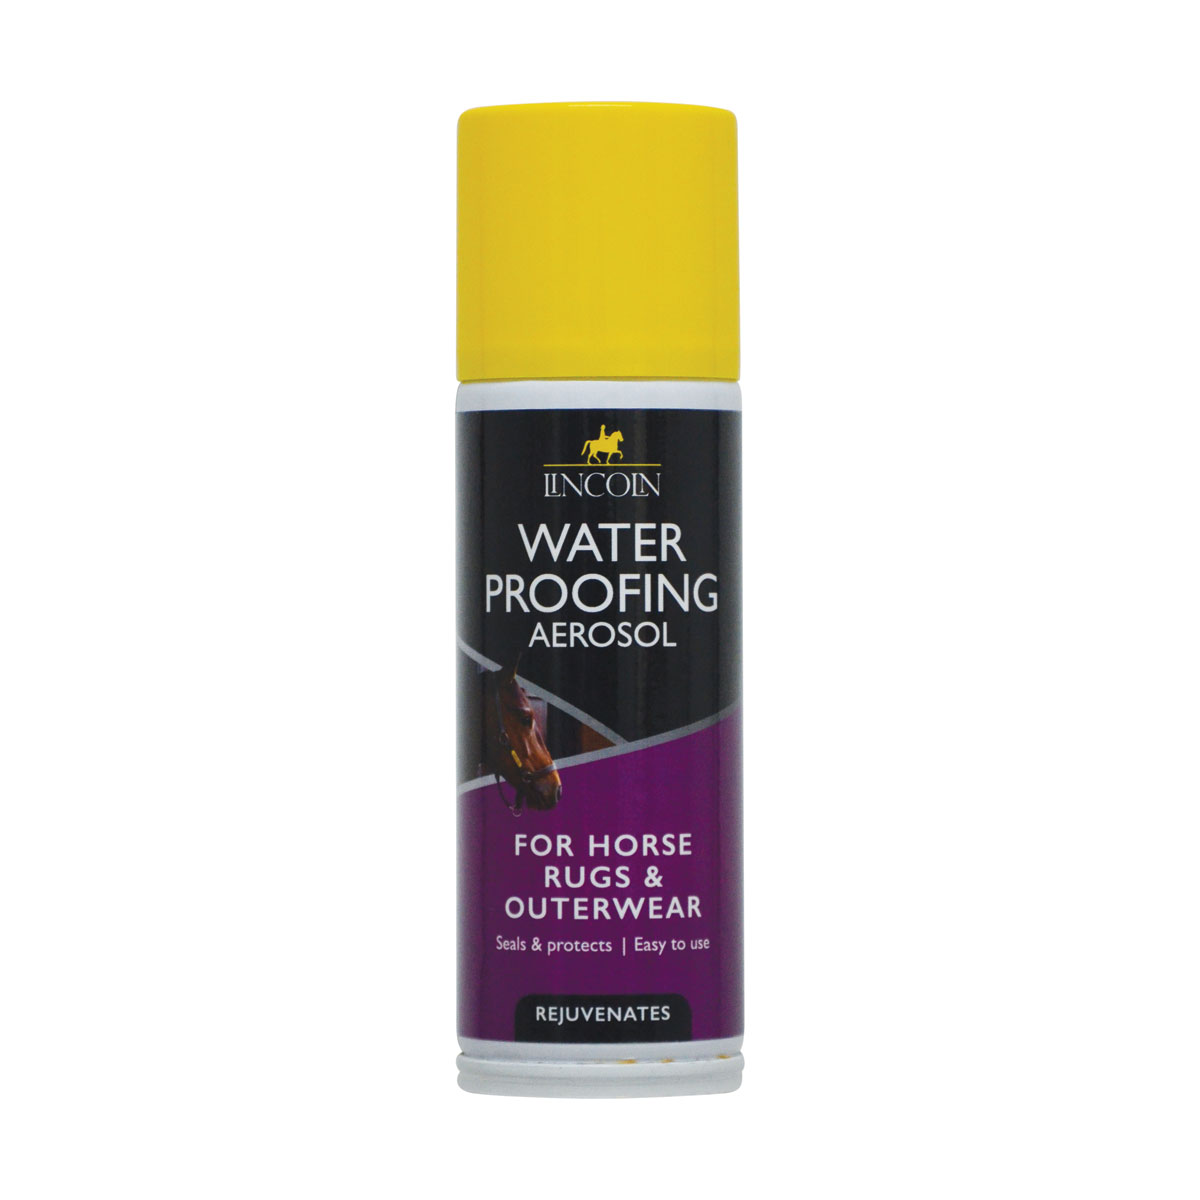 PR-4315-Lincoln-Water-Proofing-Aerosol-01.jpg